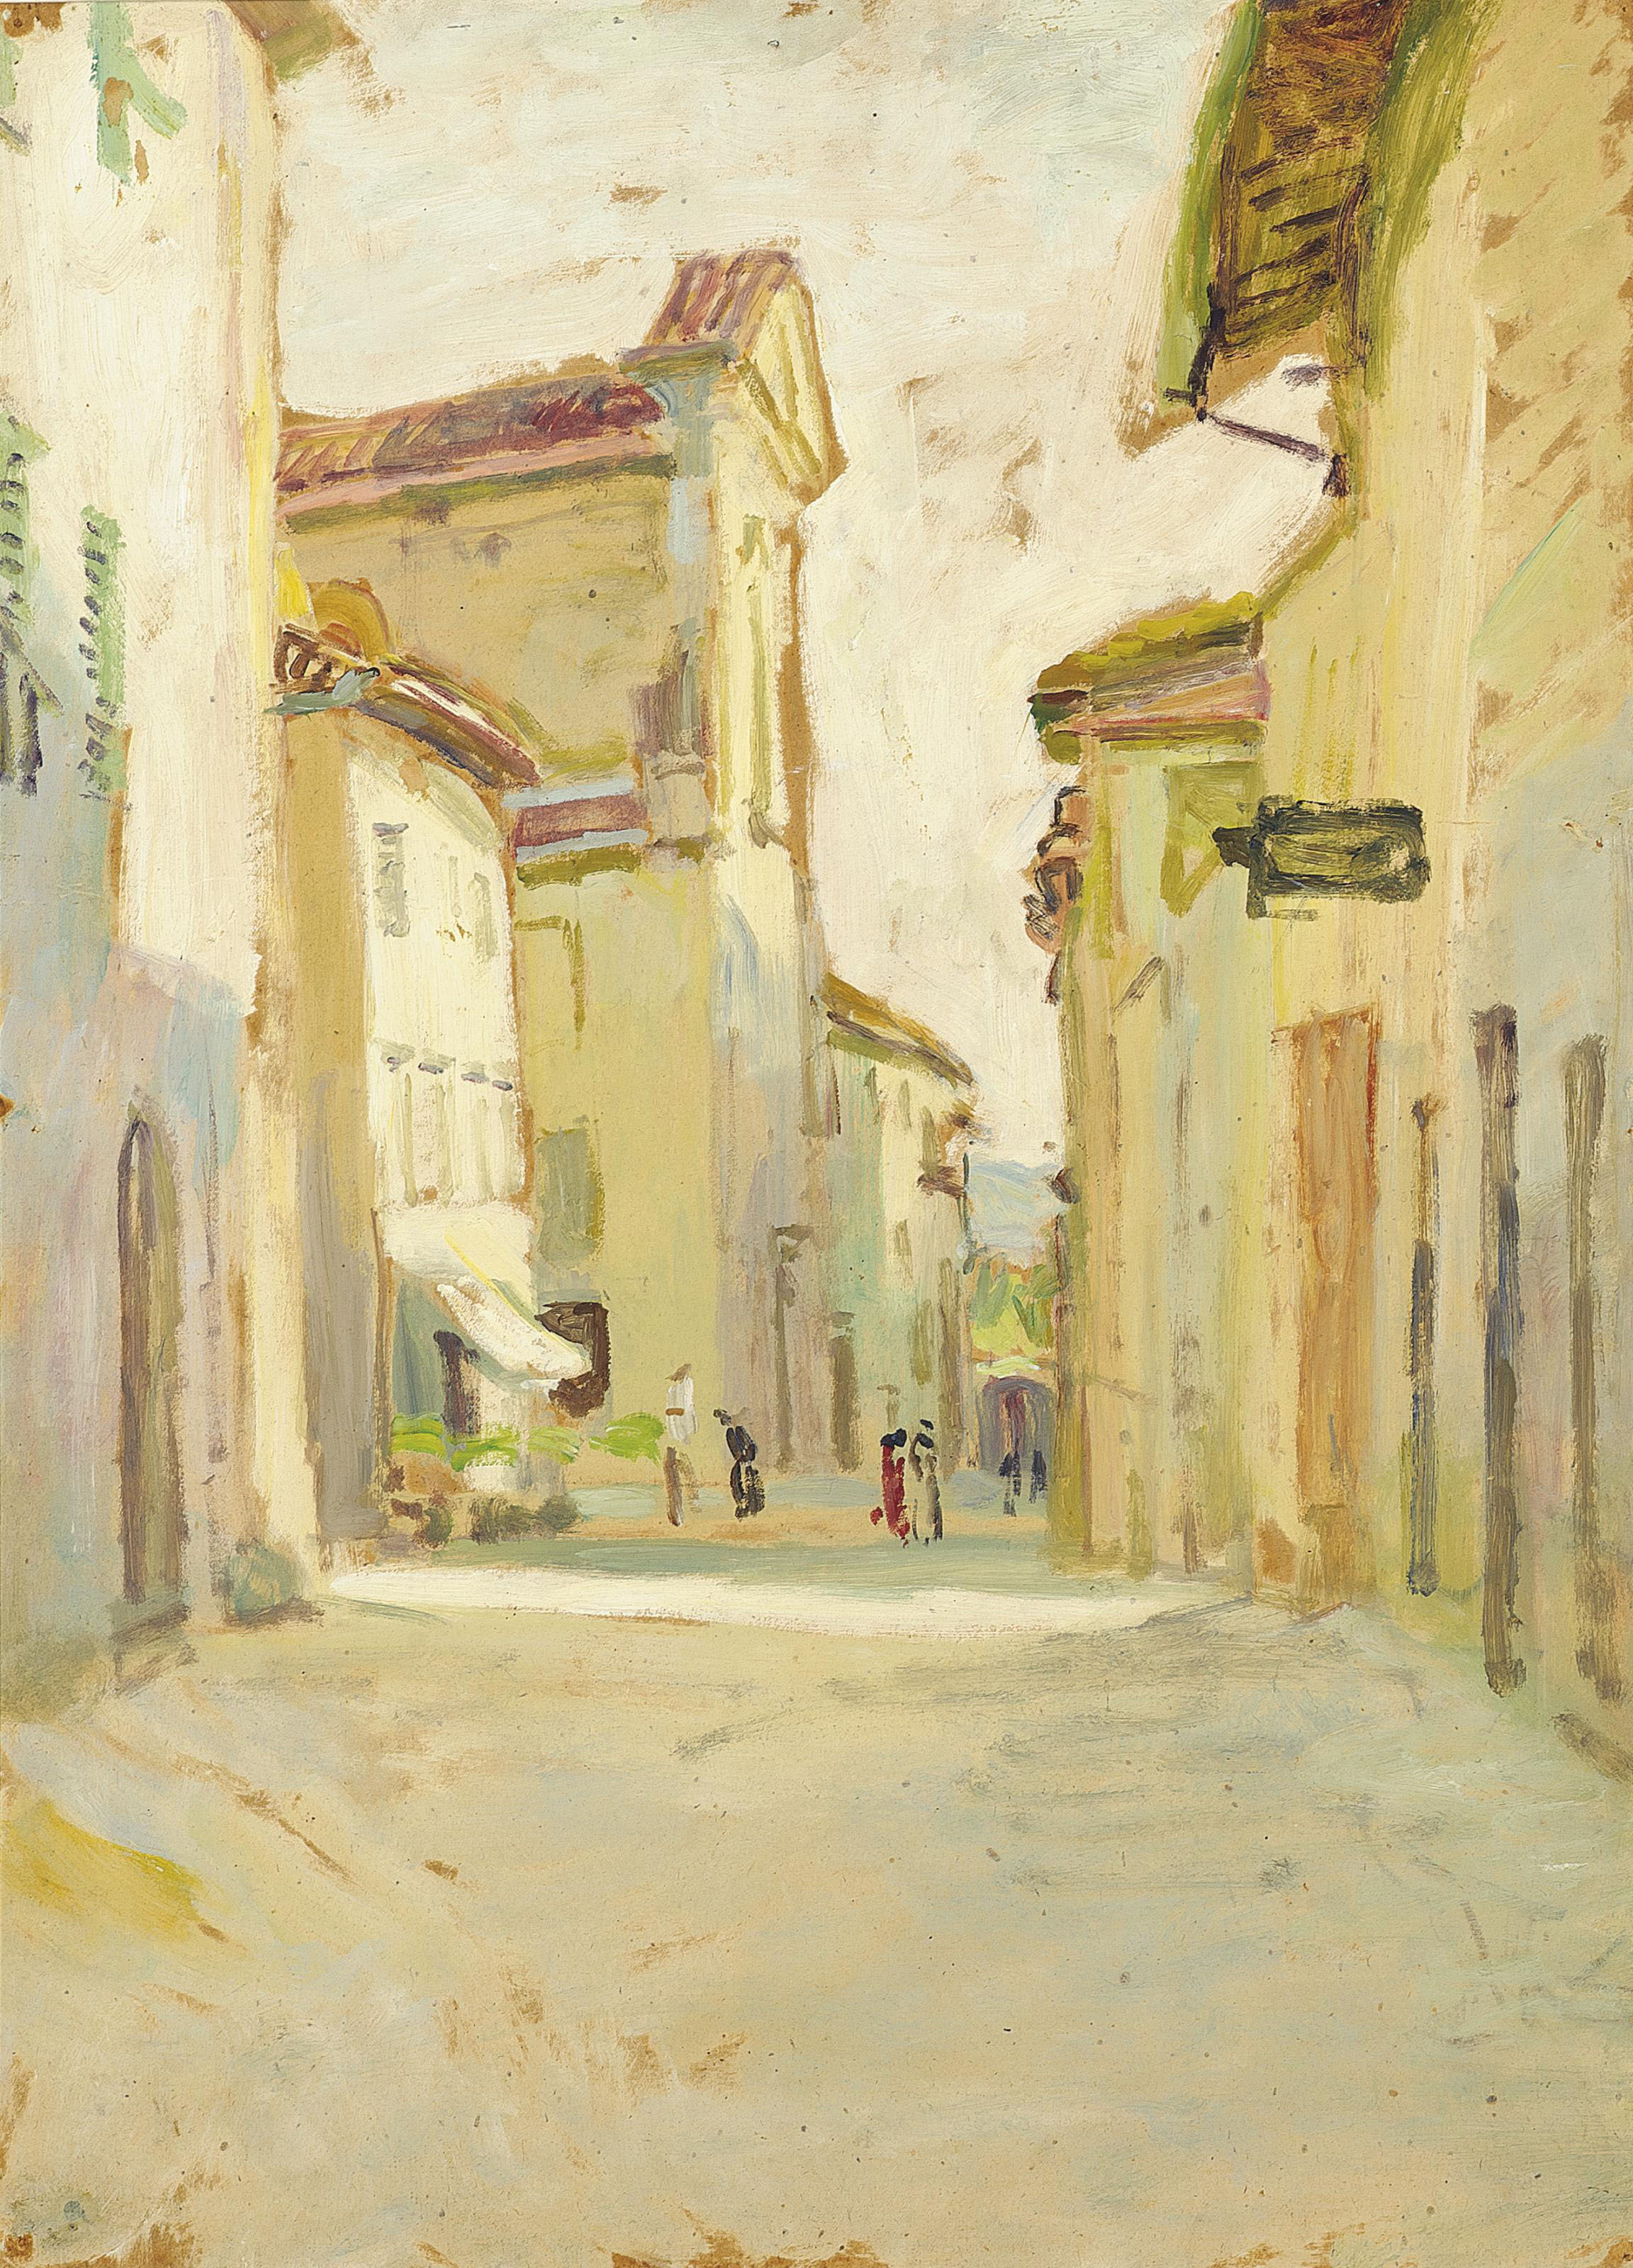 Figures in a Street, Asolo, Italy